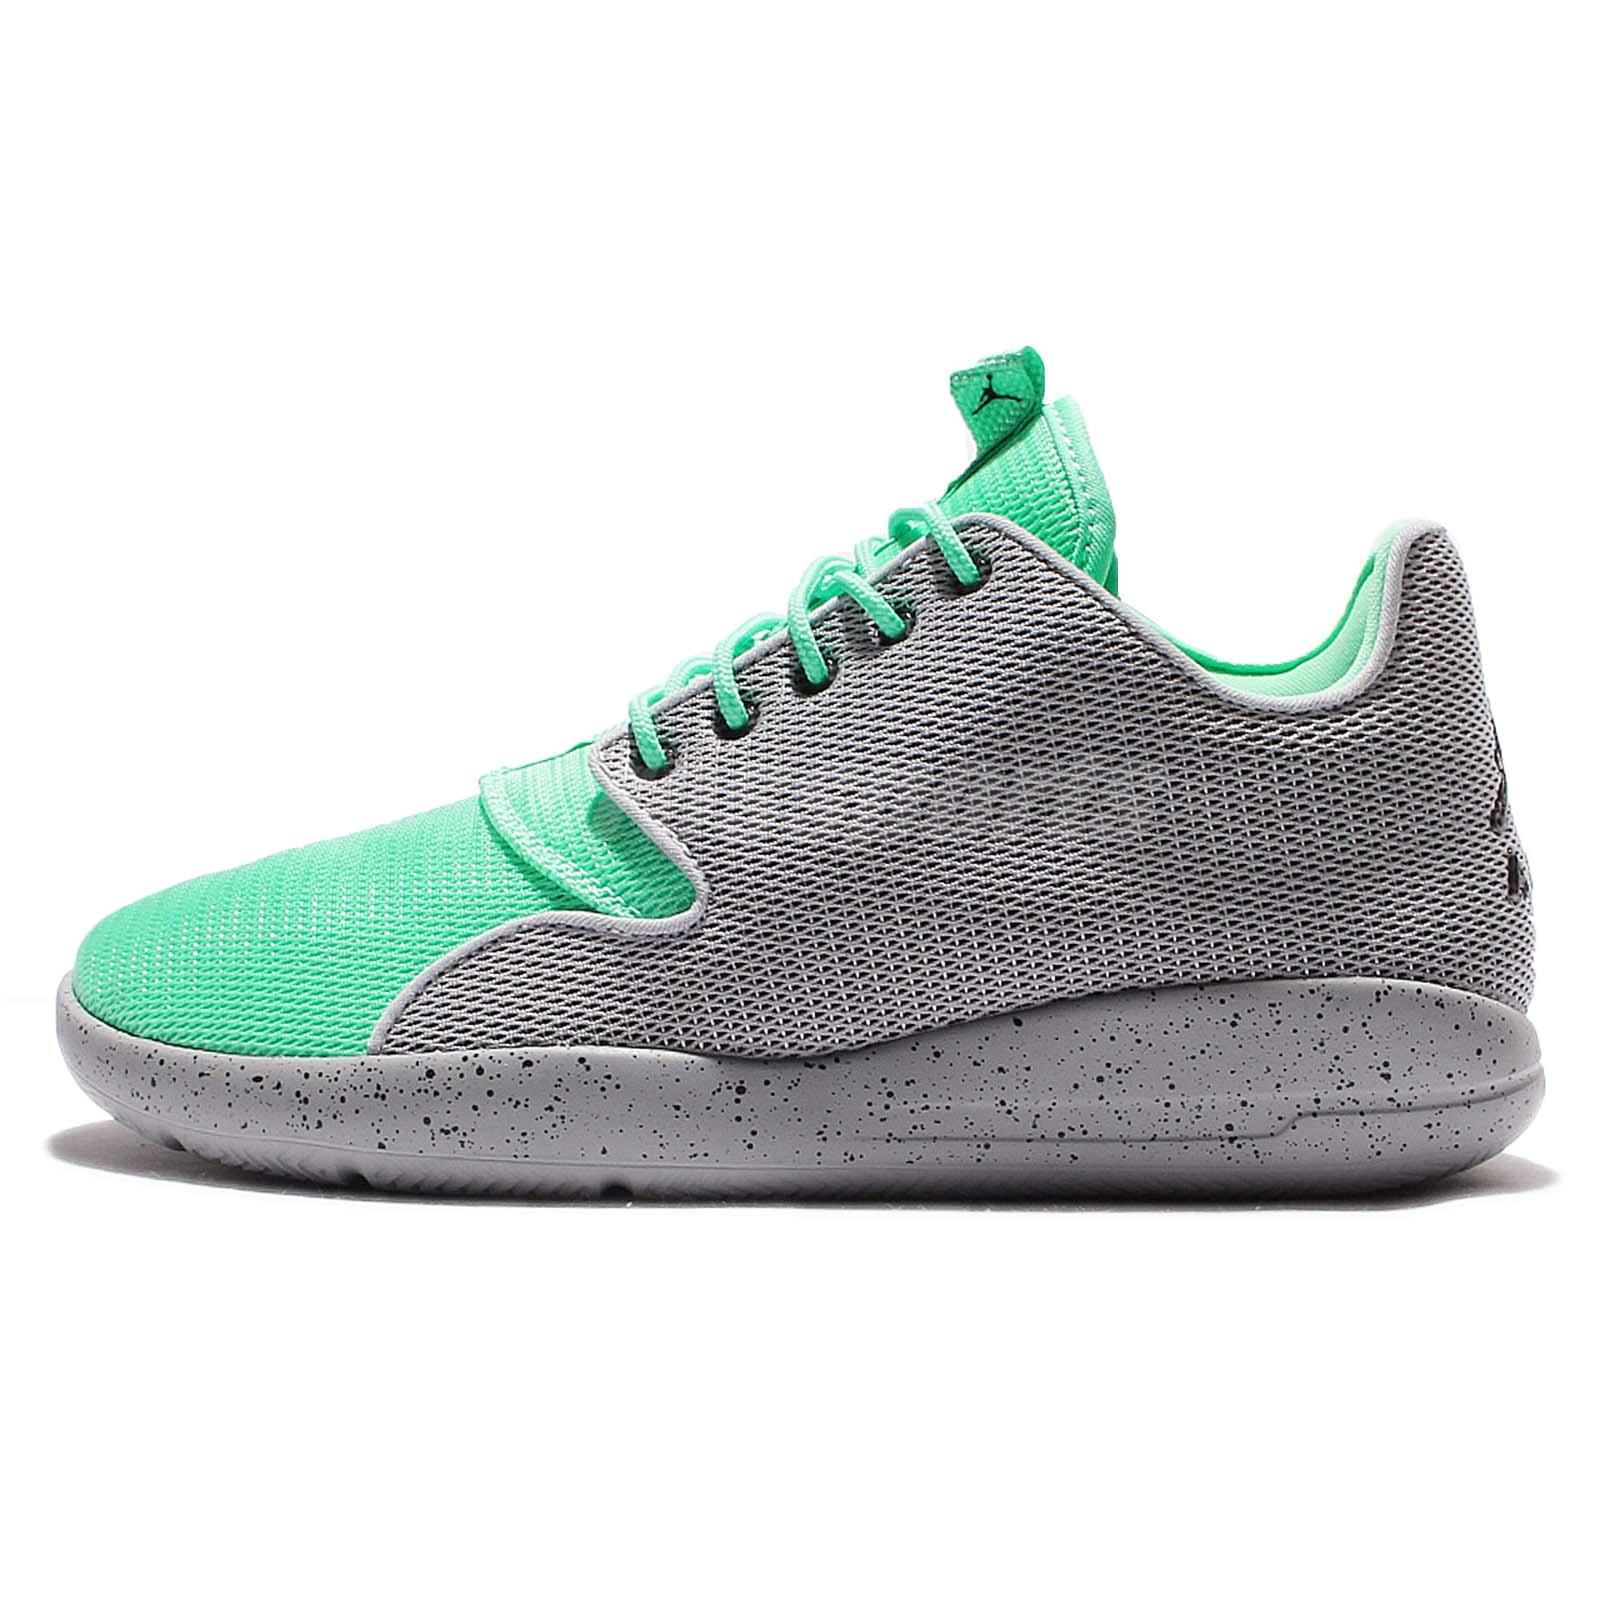 Nike Jordan Eclipse Air Sole Grey Green Mens Casual Shoes ...